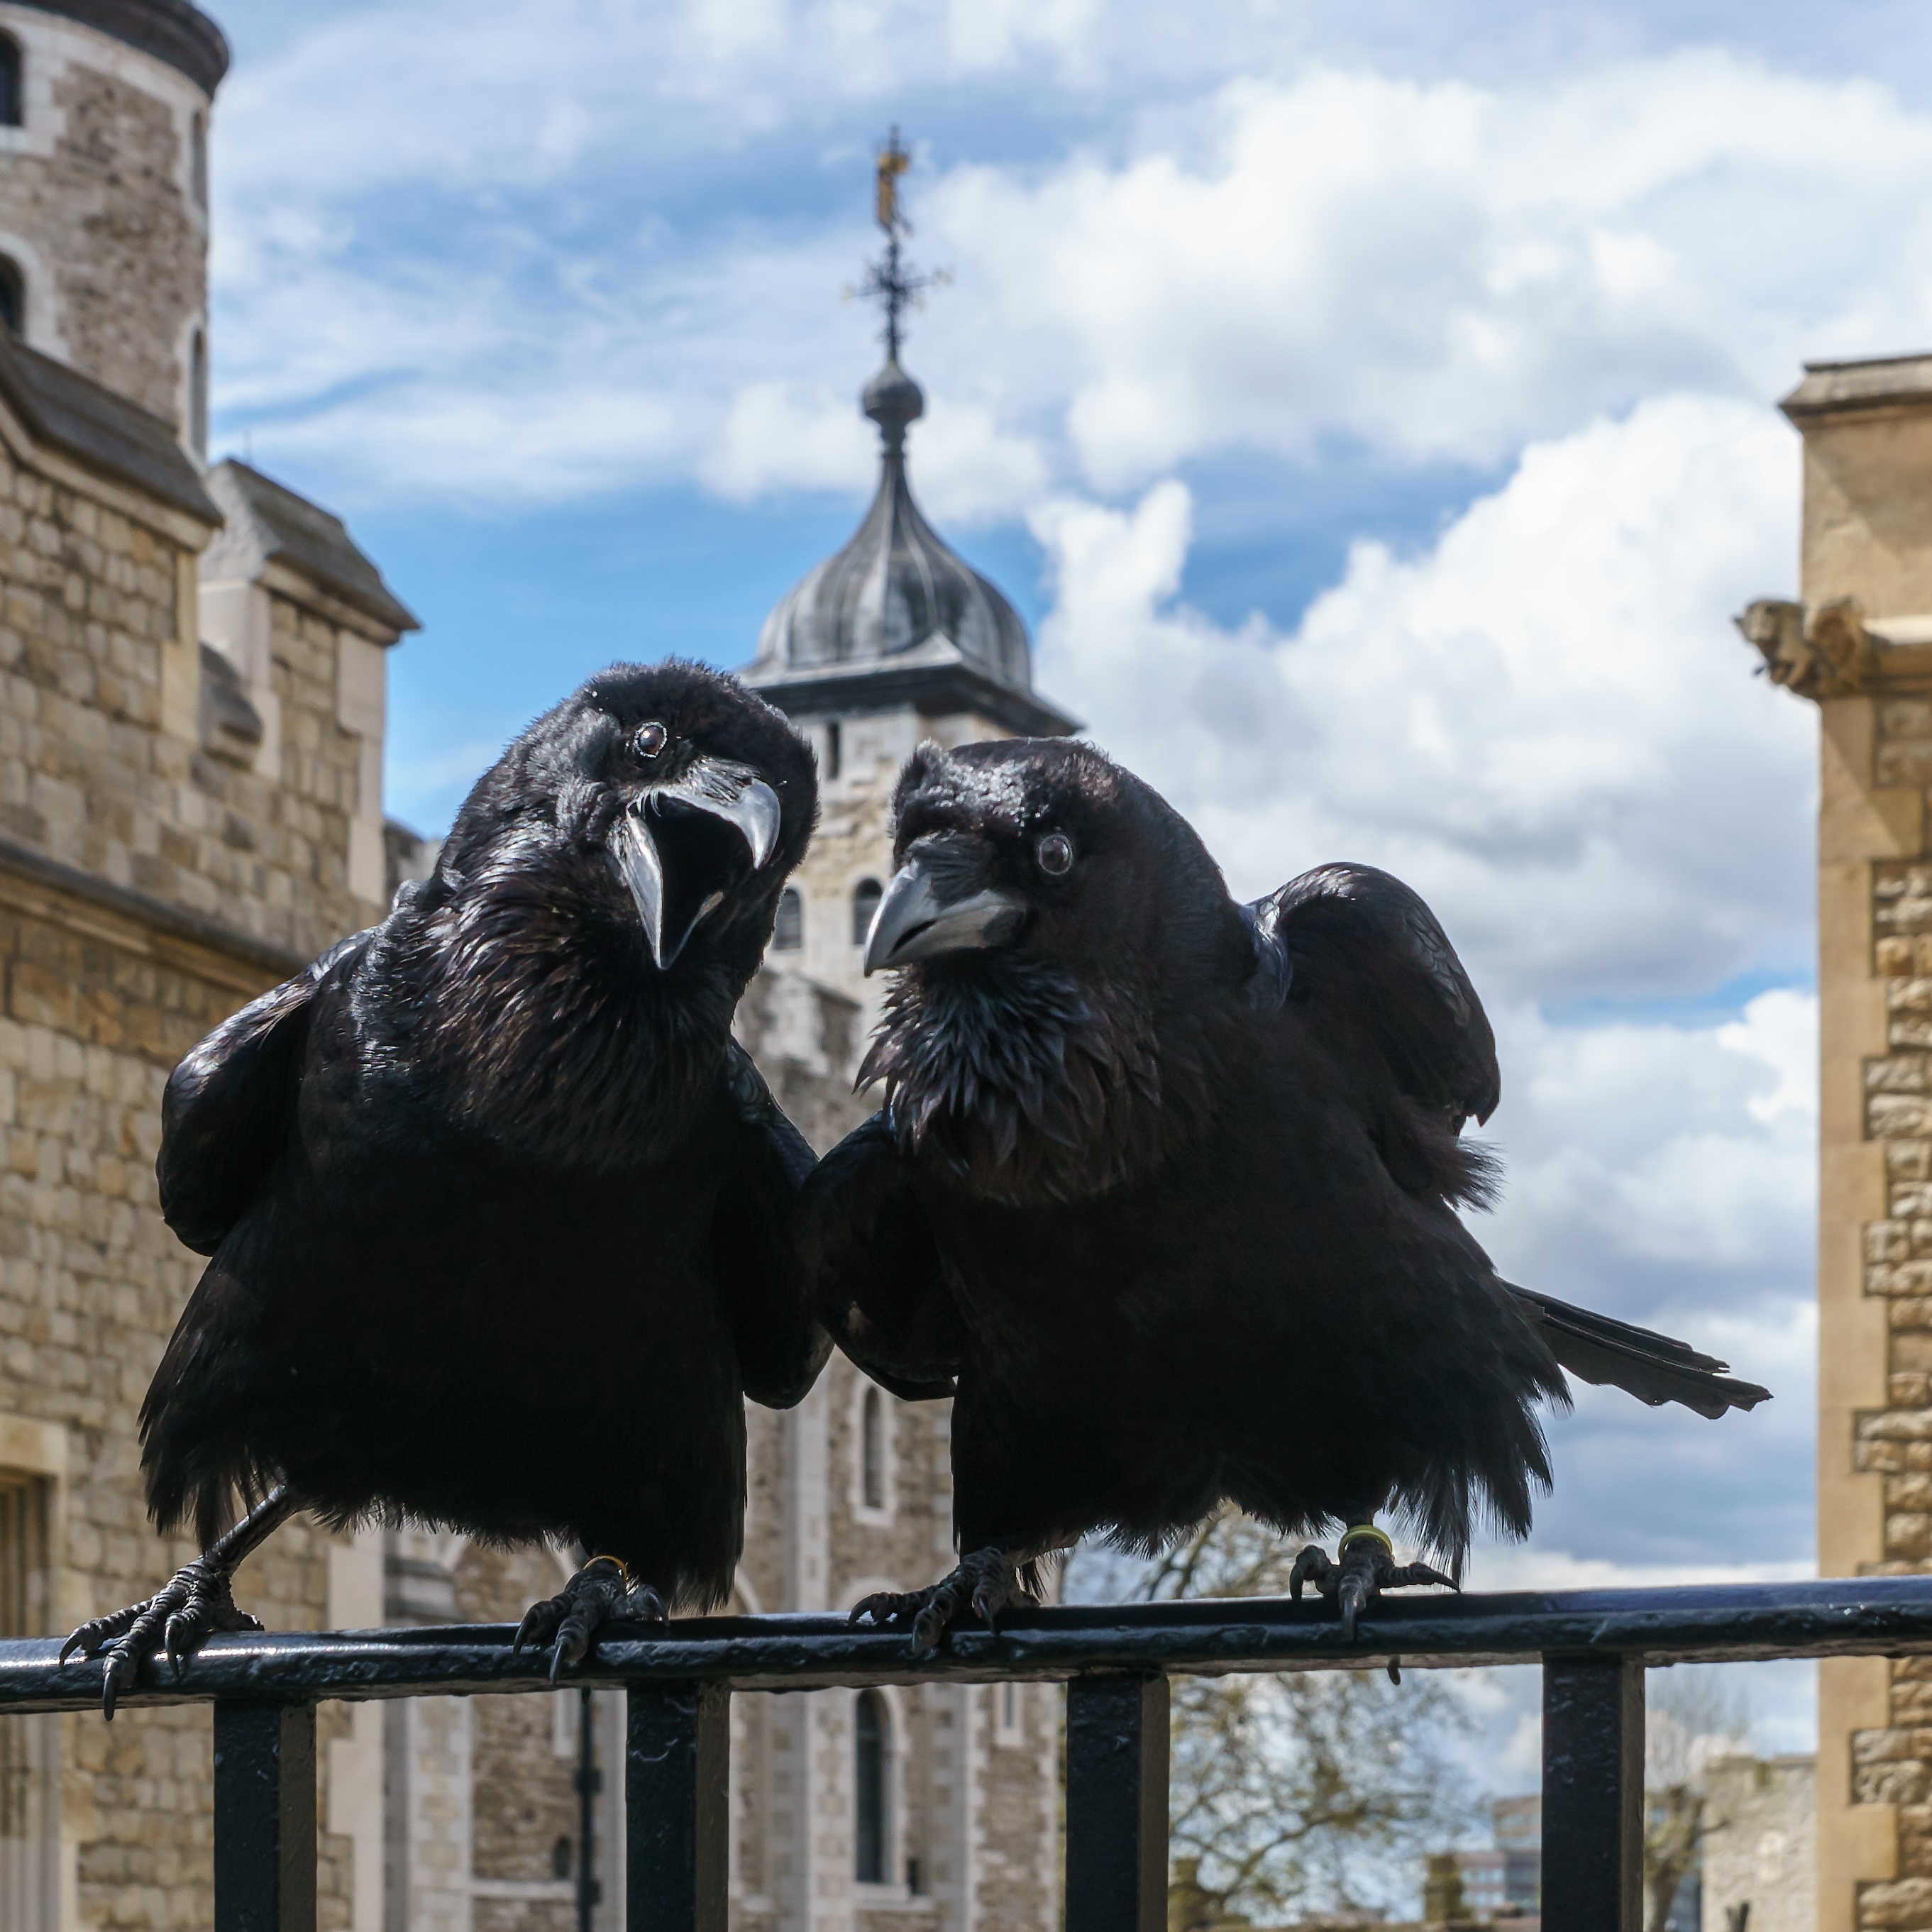 bb451a489 Two of the current Ravens of the Tower of London. The ravens  presence is  traditionally believed to protect the Crown and the tower  a superstition  holds ...